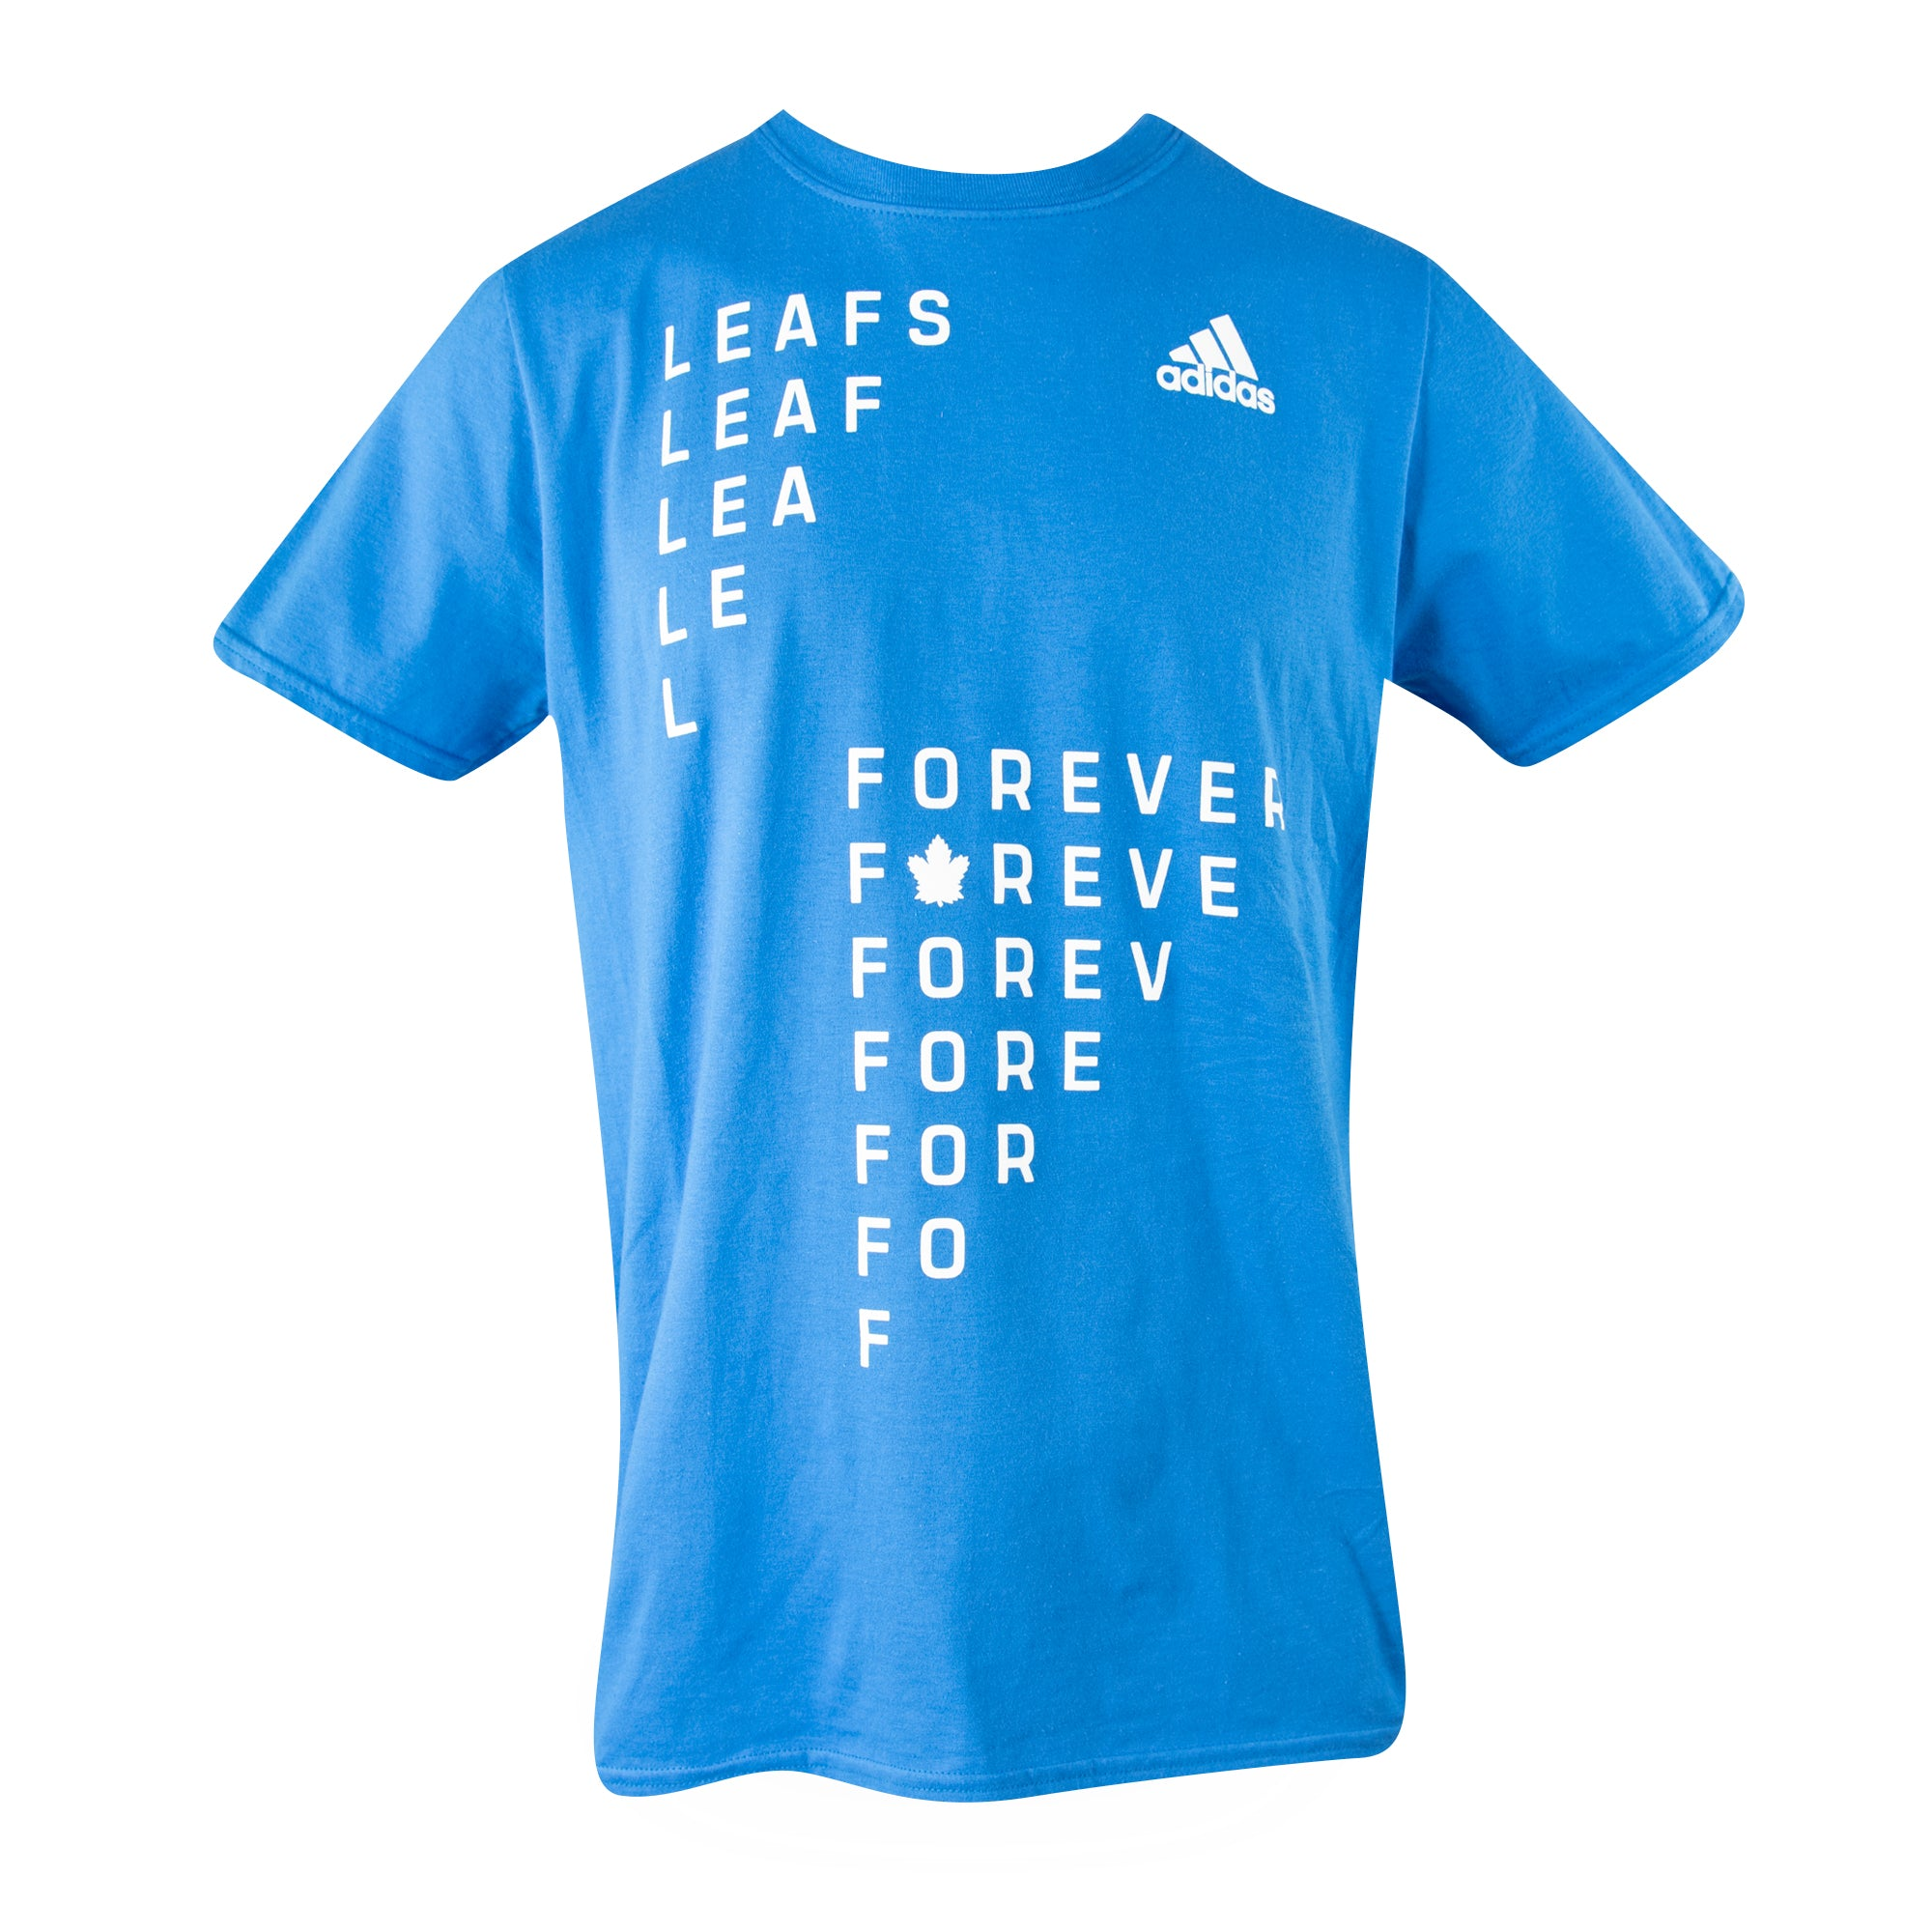 Maple Leafs Adidas Men's Leafs Forever Tee - Blue